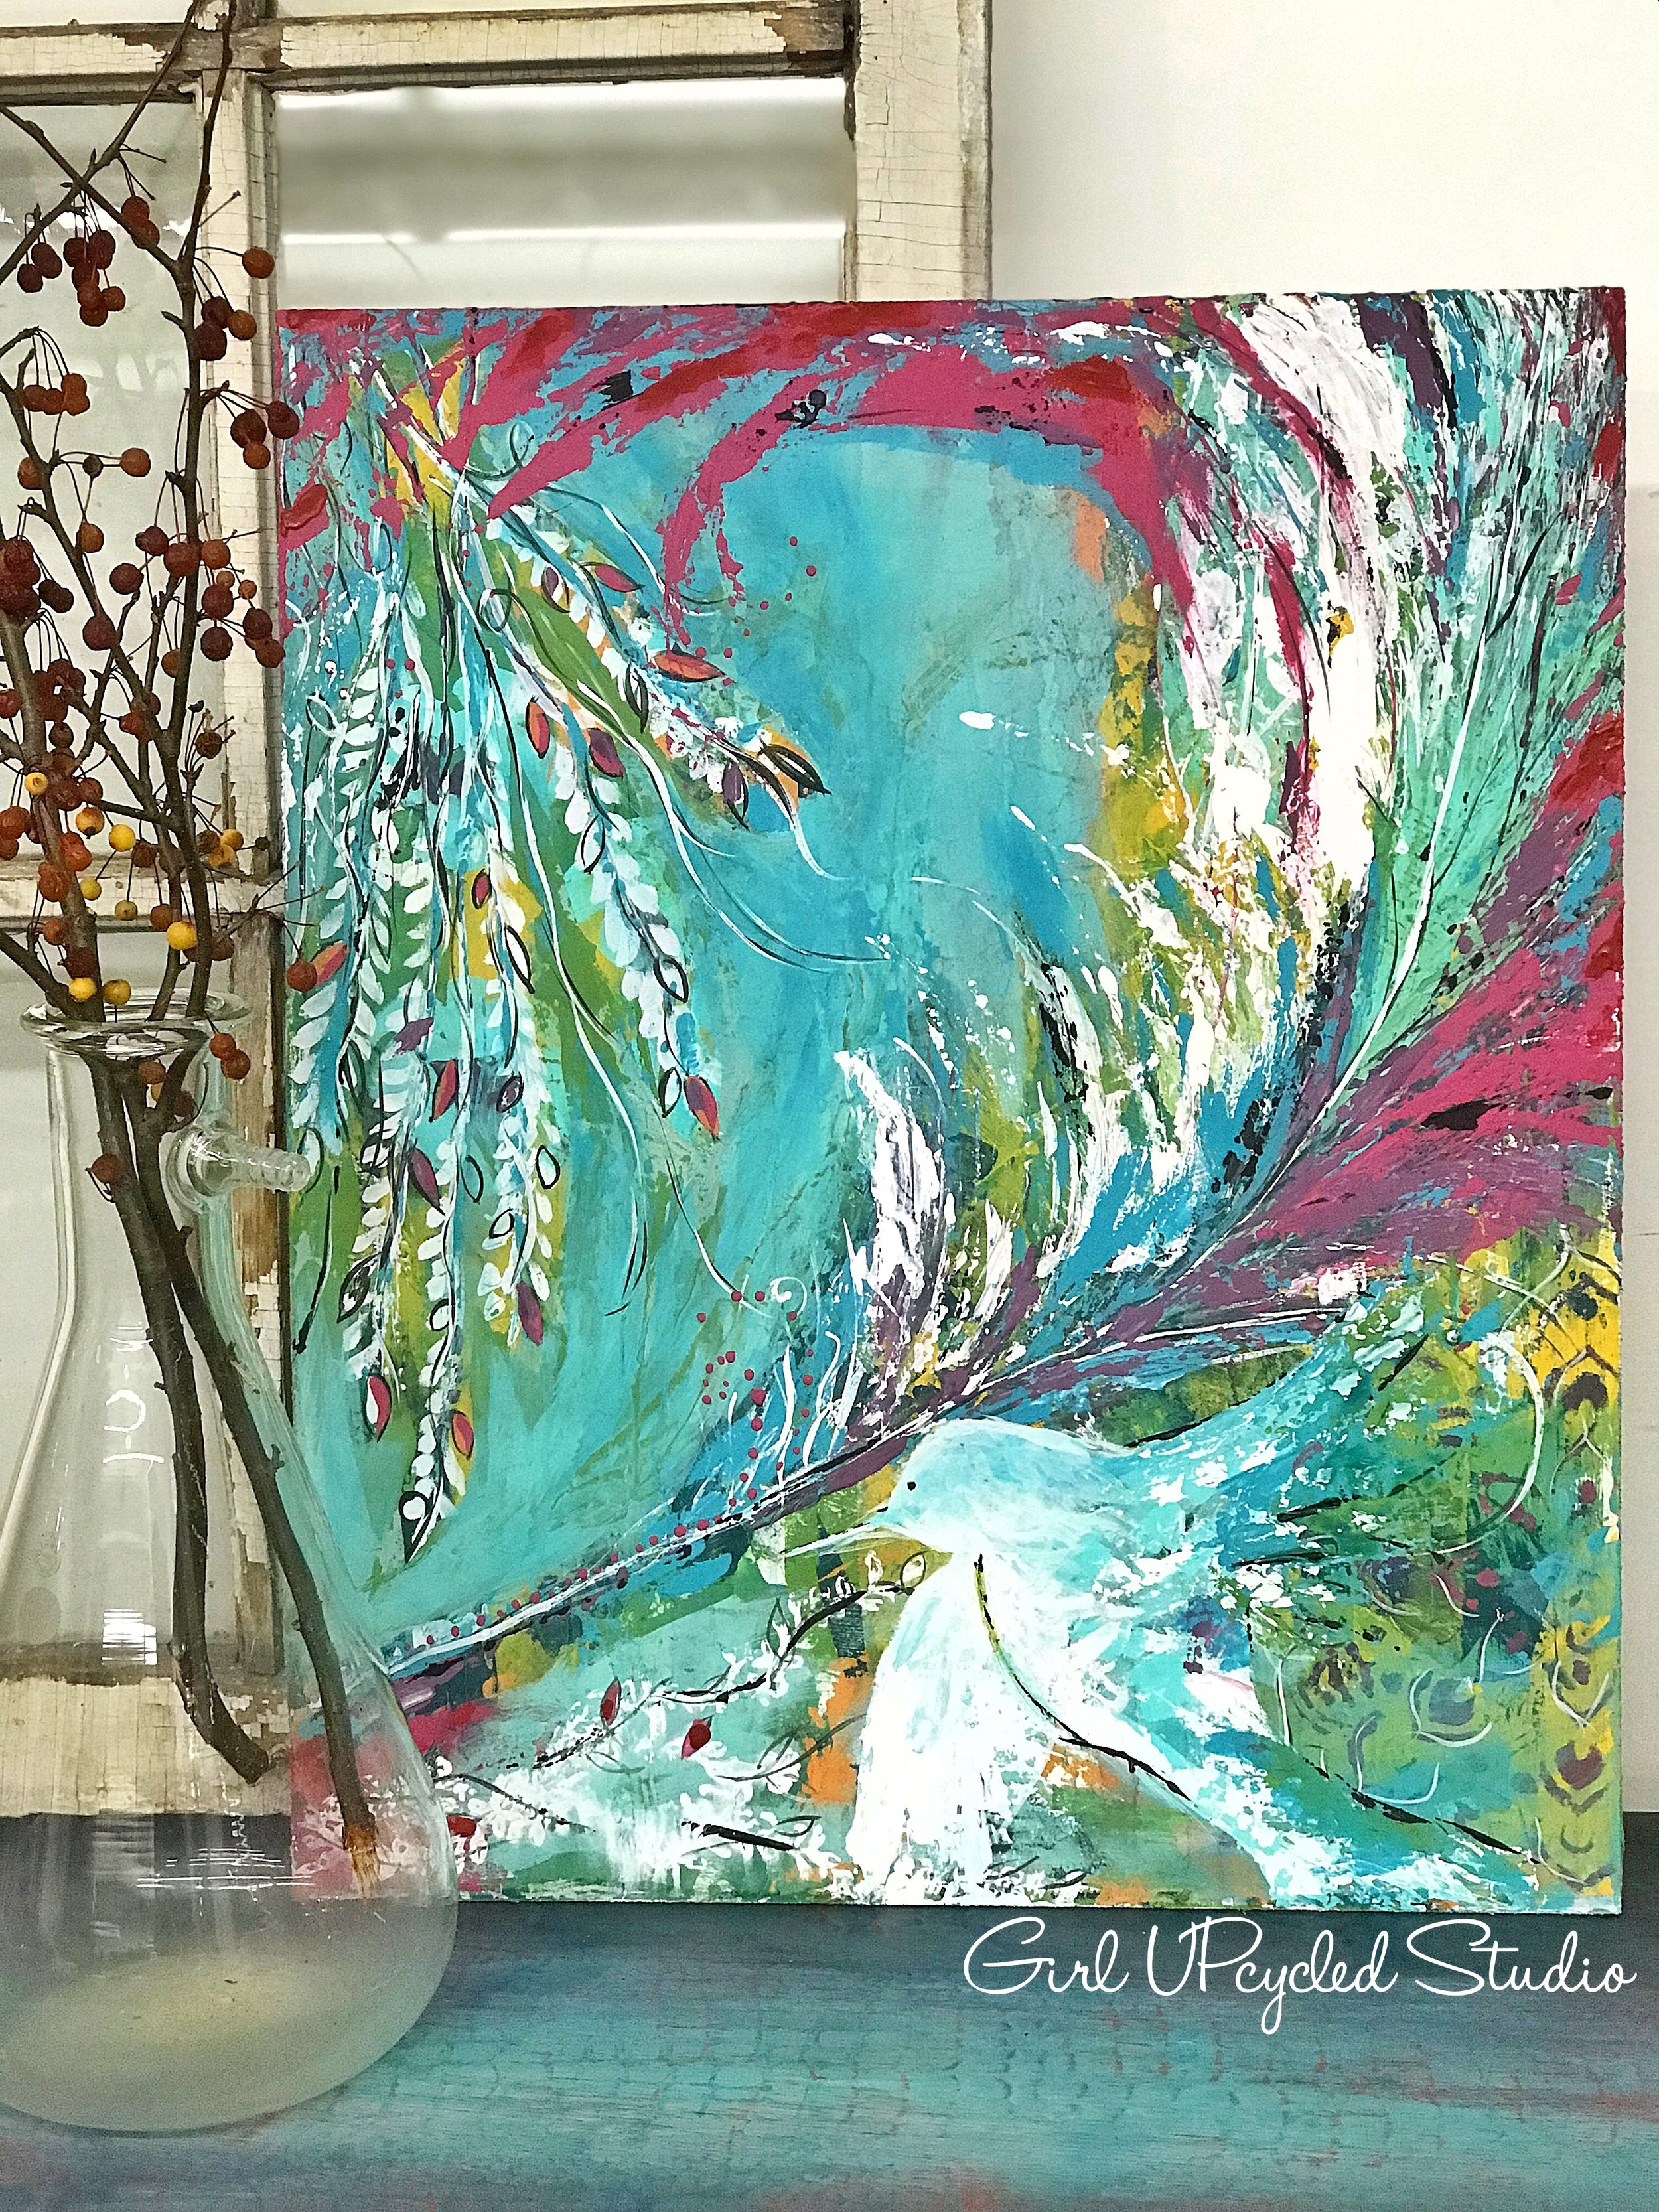 Bird in flight - creating impulse paintings can be quite liberating and freeing